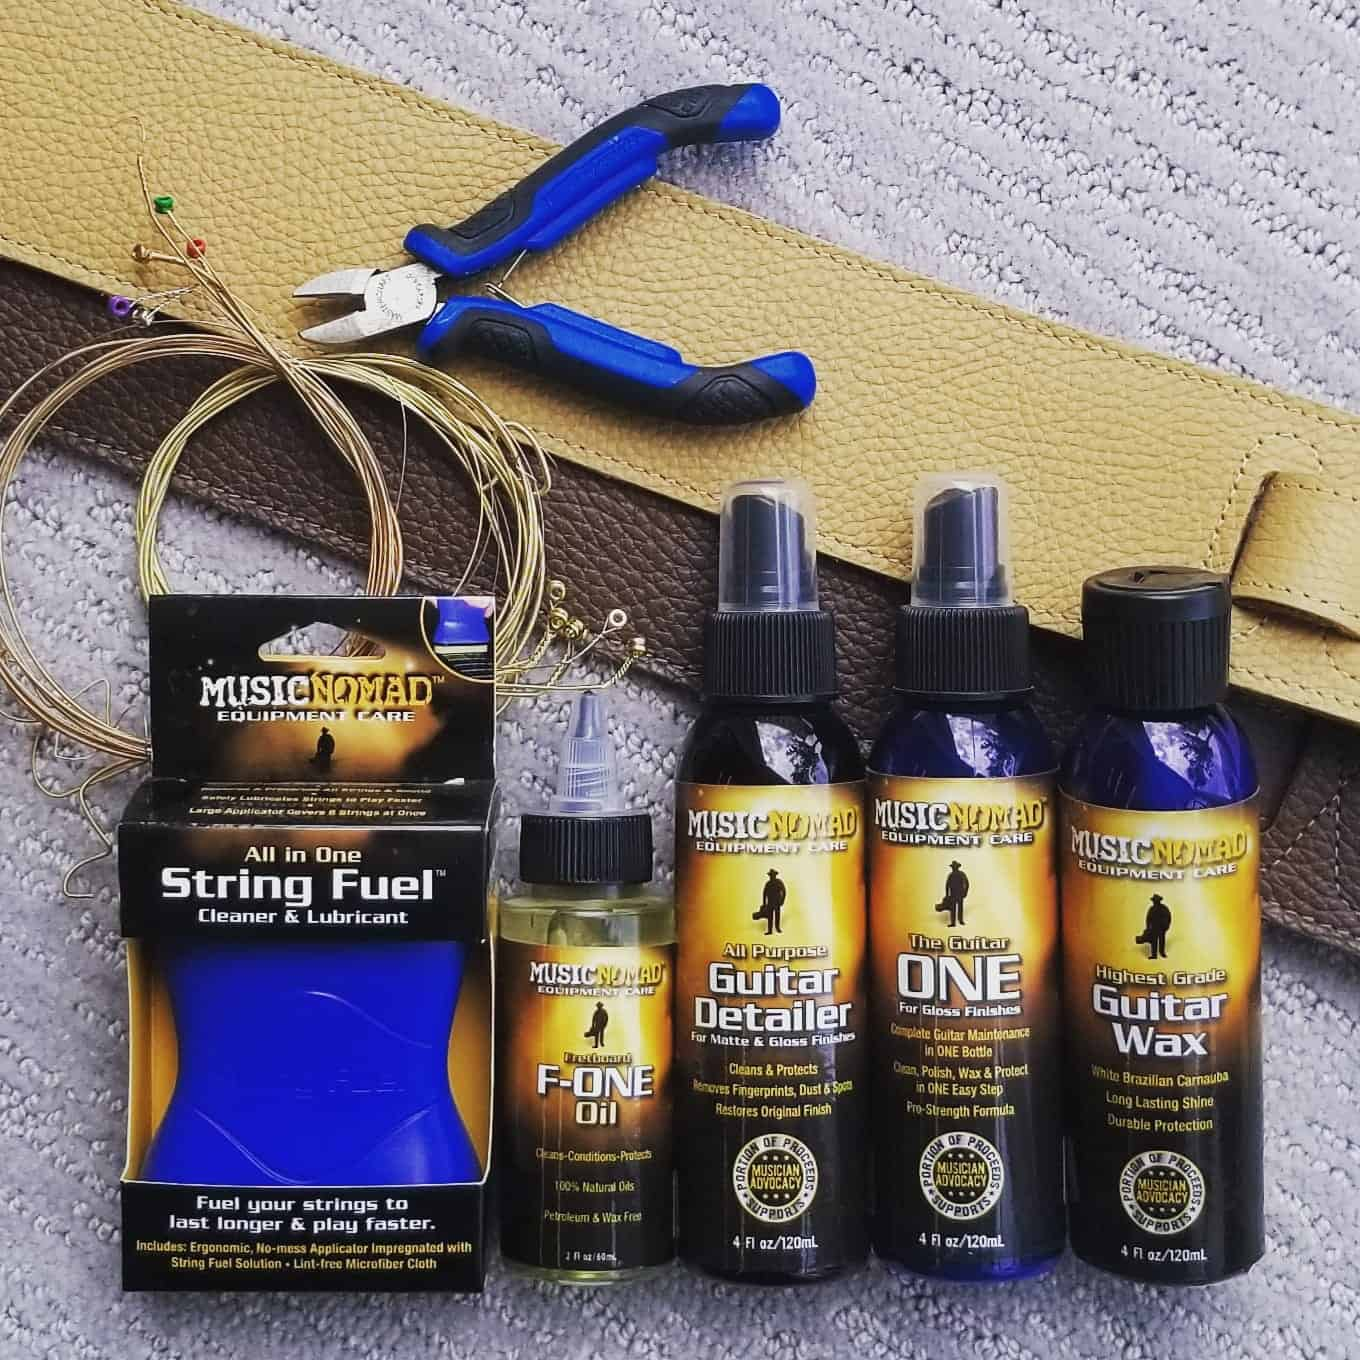 Music Nomad String Fuel, F-One Oil, Guitar Detailer, The Guitar ONE and Guitar Wax cleaners